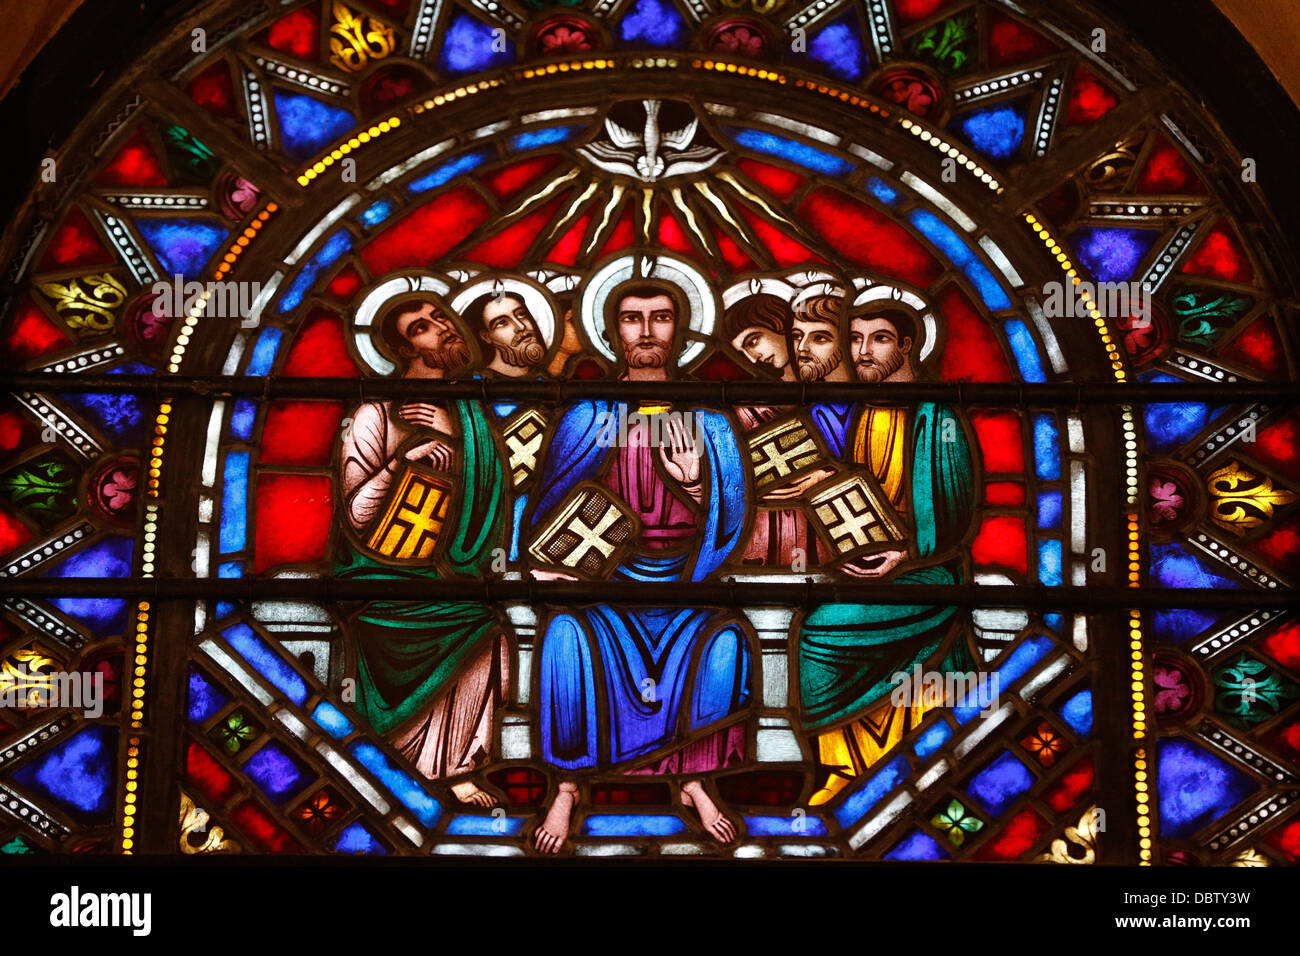 Stained Glass Window Of Jesus And The 12 Apostles St